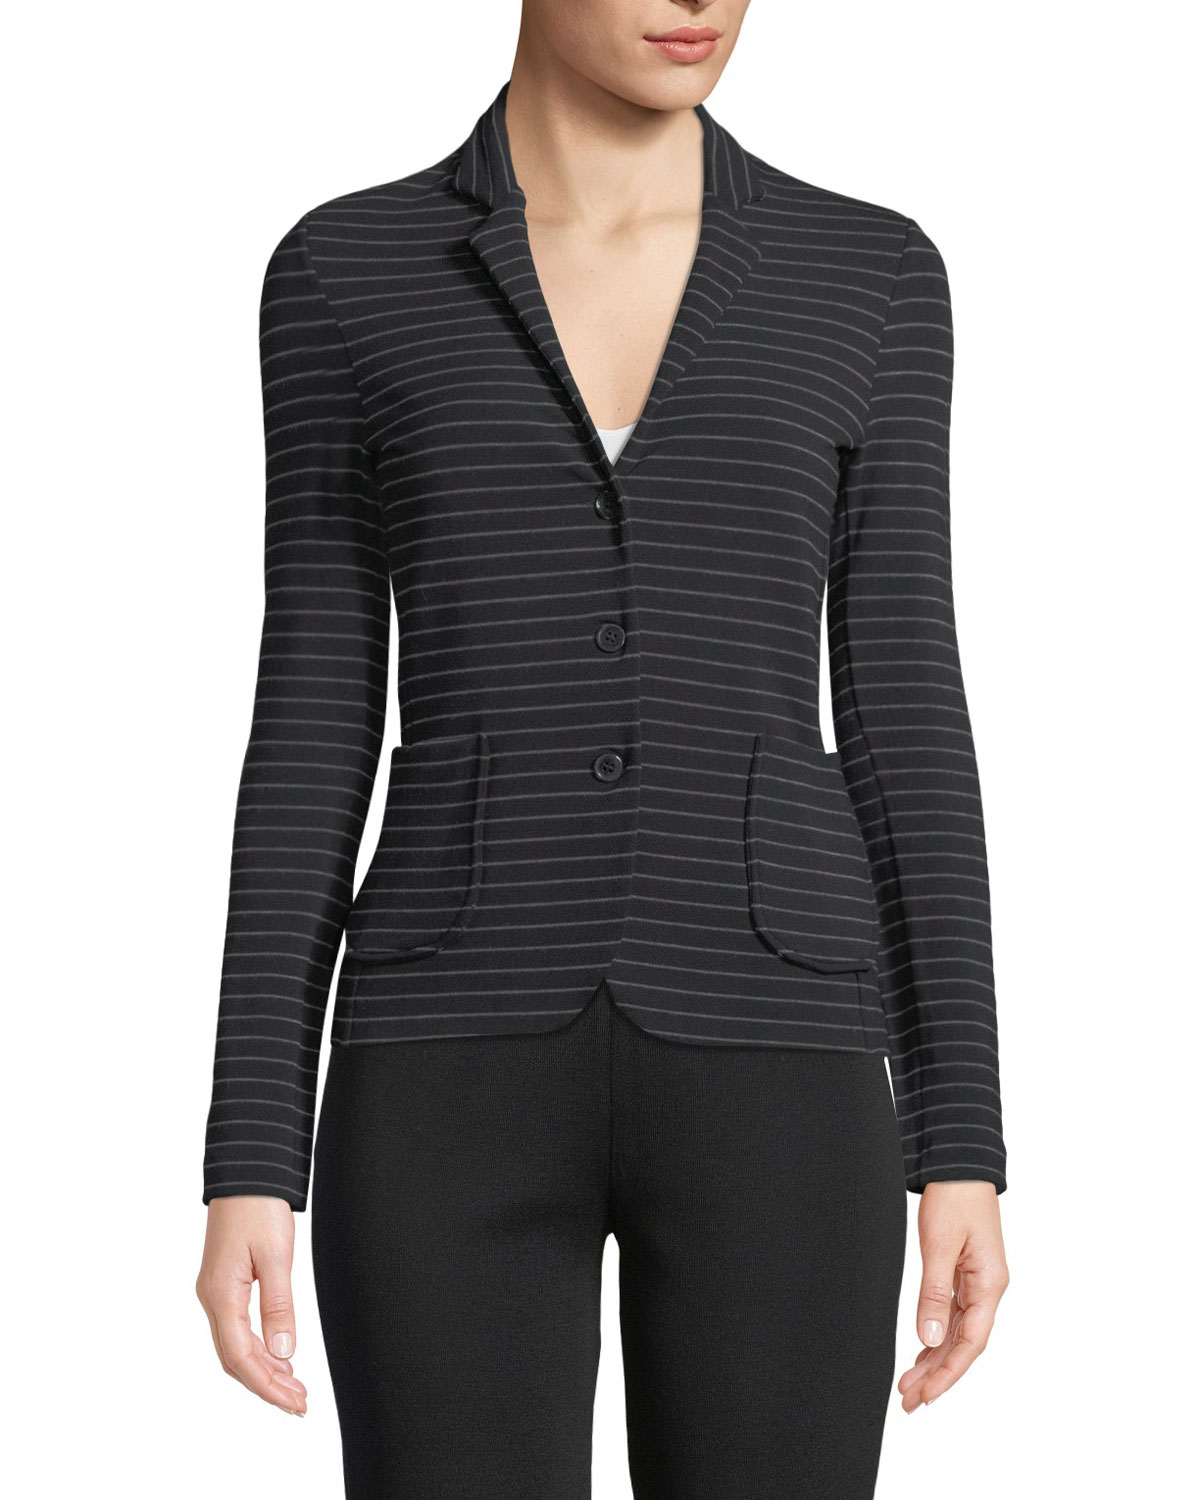 MAJESTIC Soft Touch Striped Single-Breasted Blazer in Noir Flannel